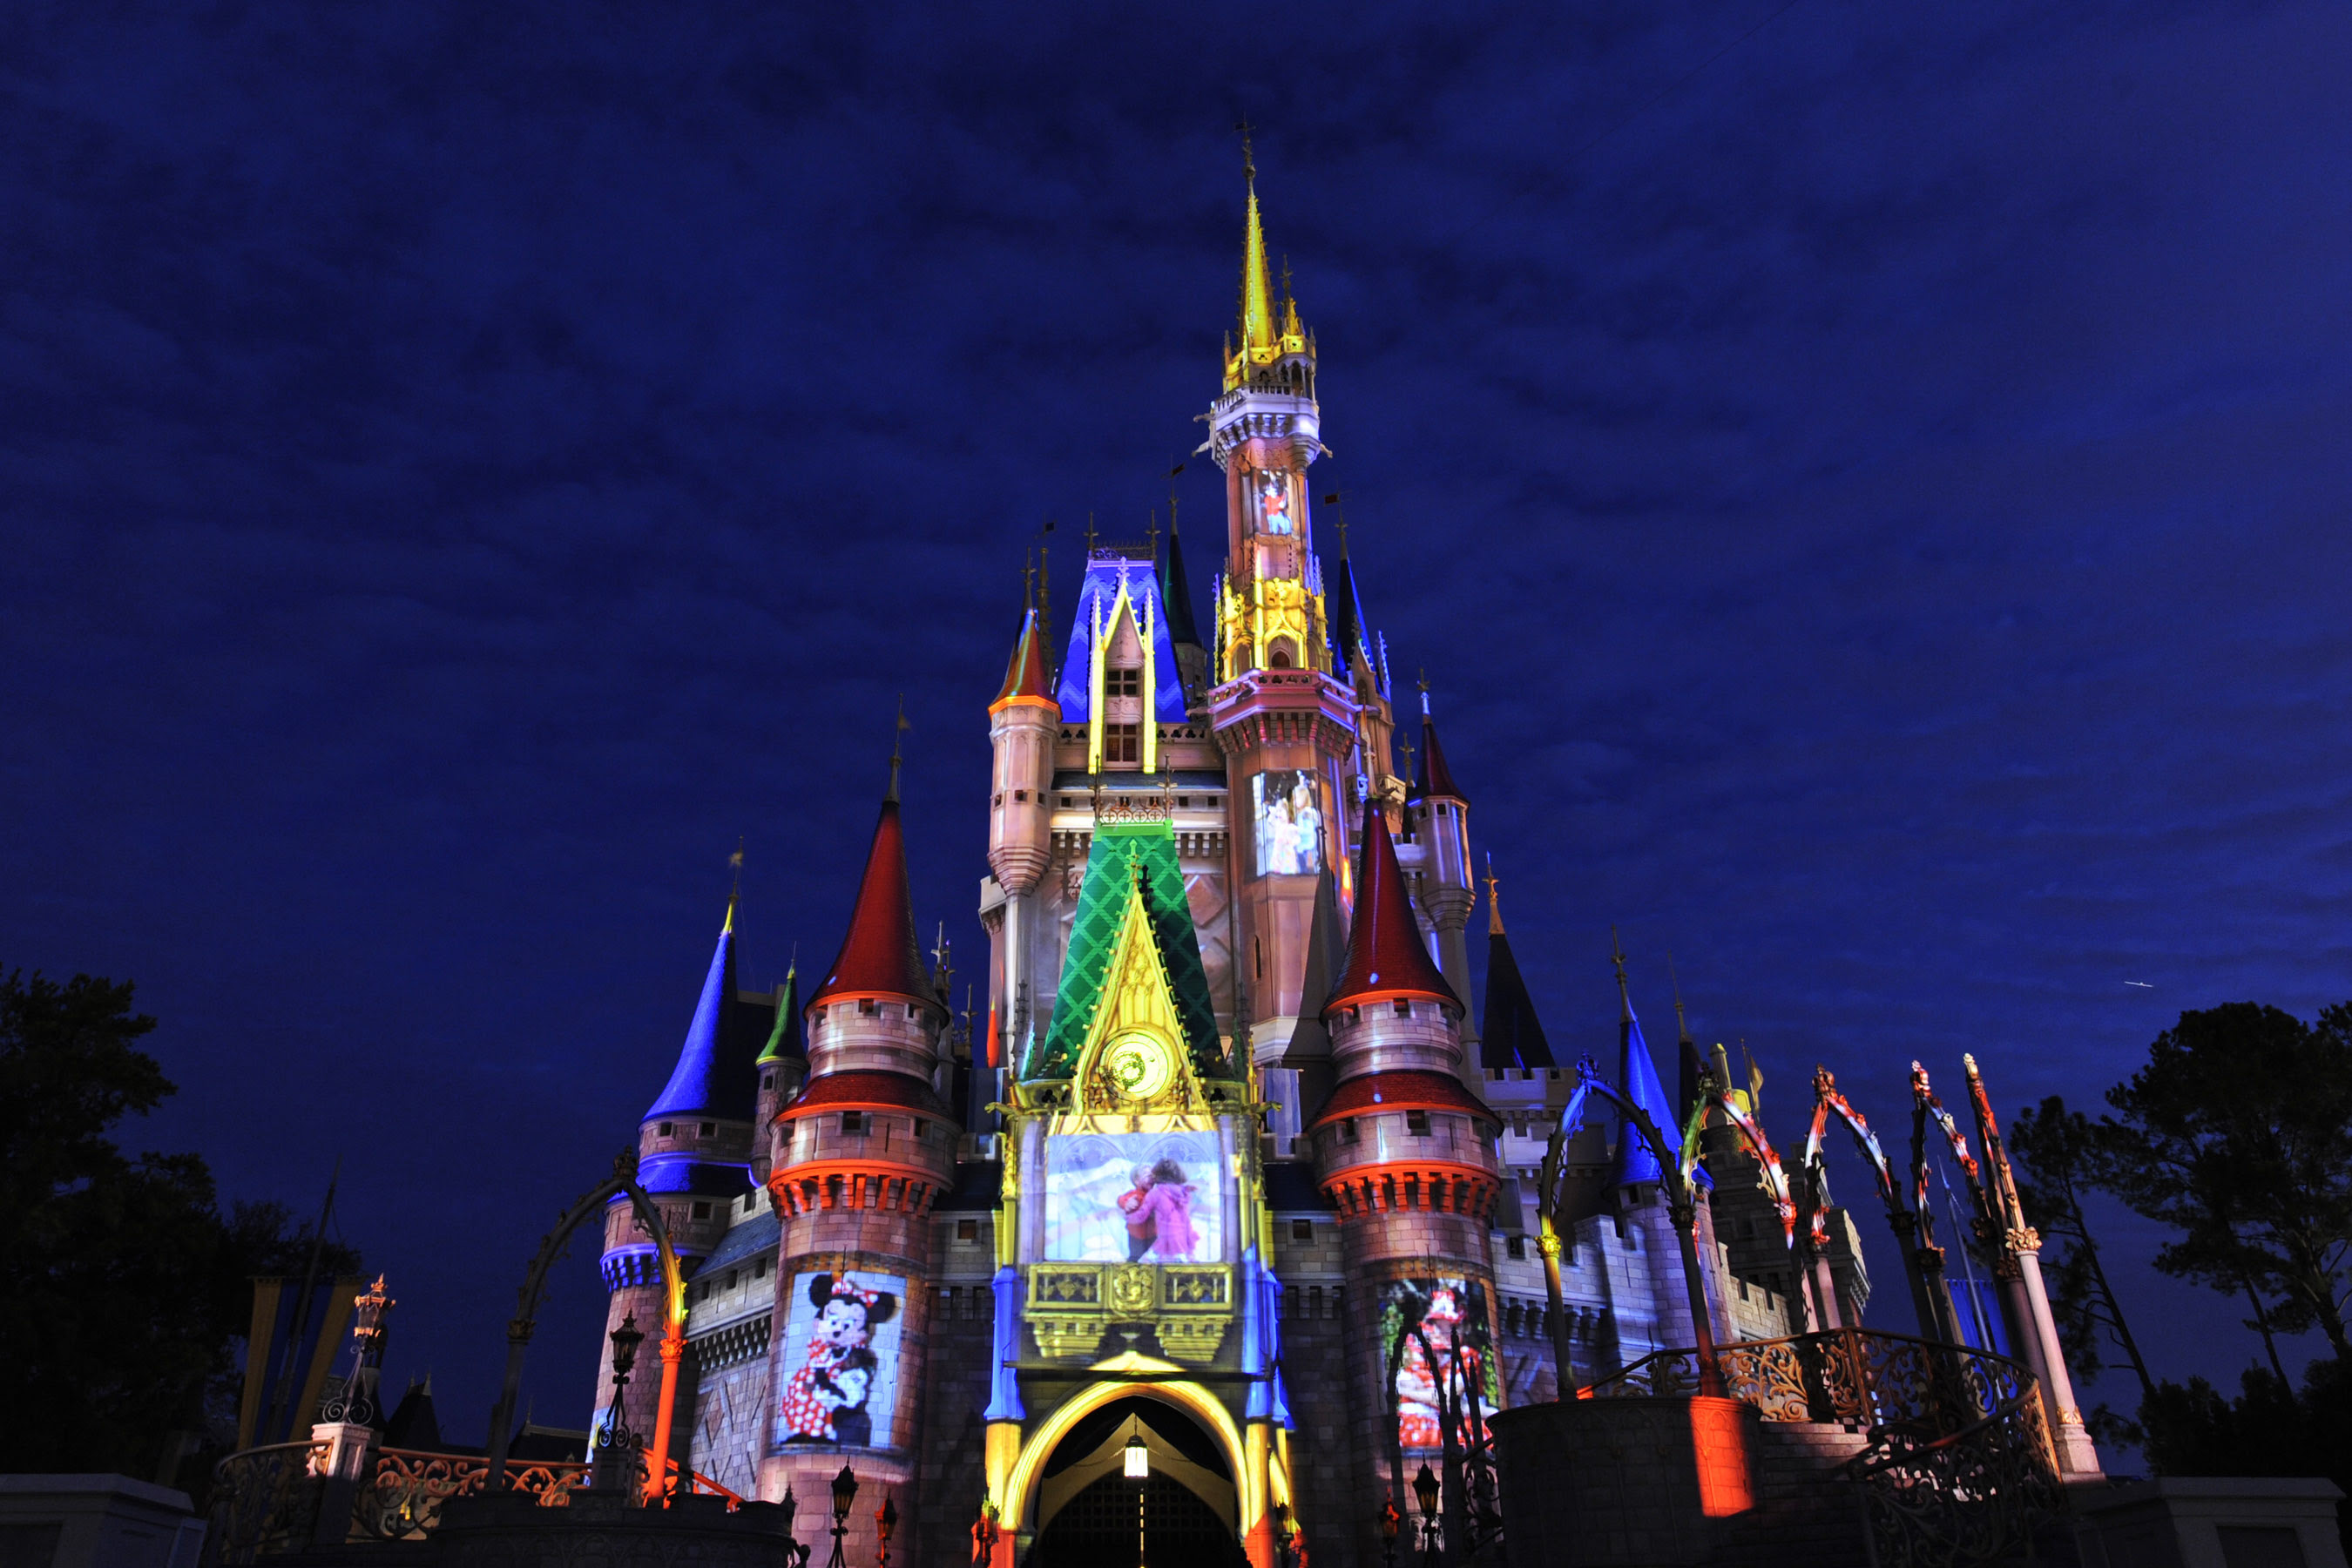 Do you pay off your Disney World trip before you go